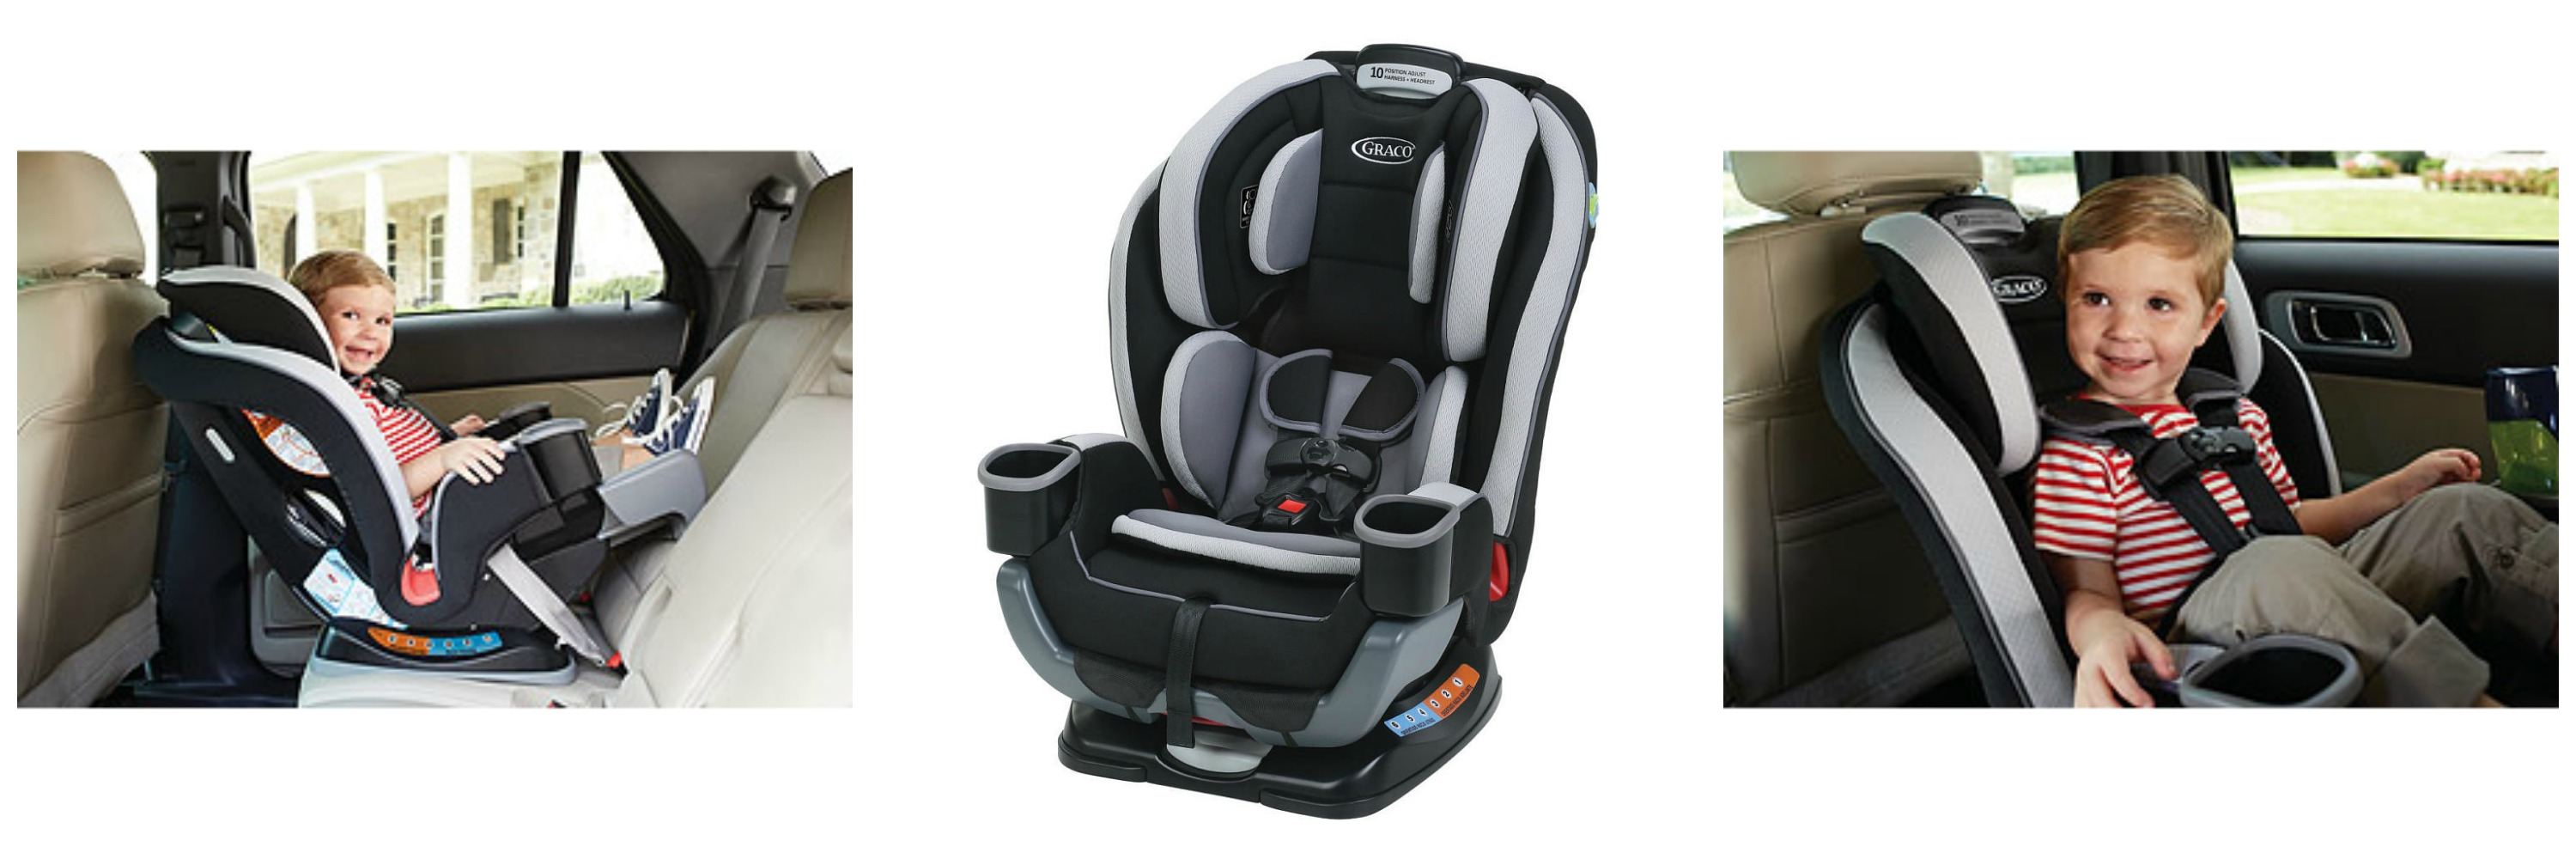 Graco Extend2Fit 3 in 1 CarSeat